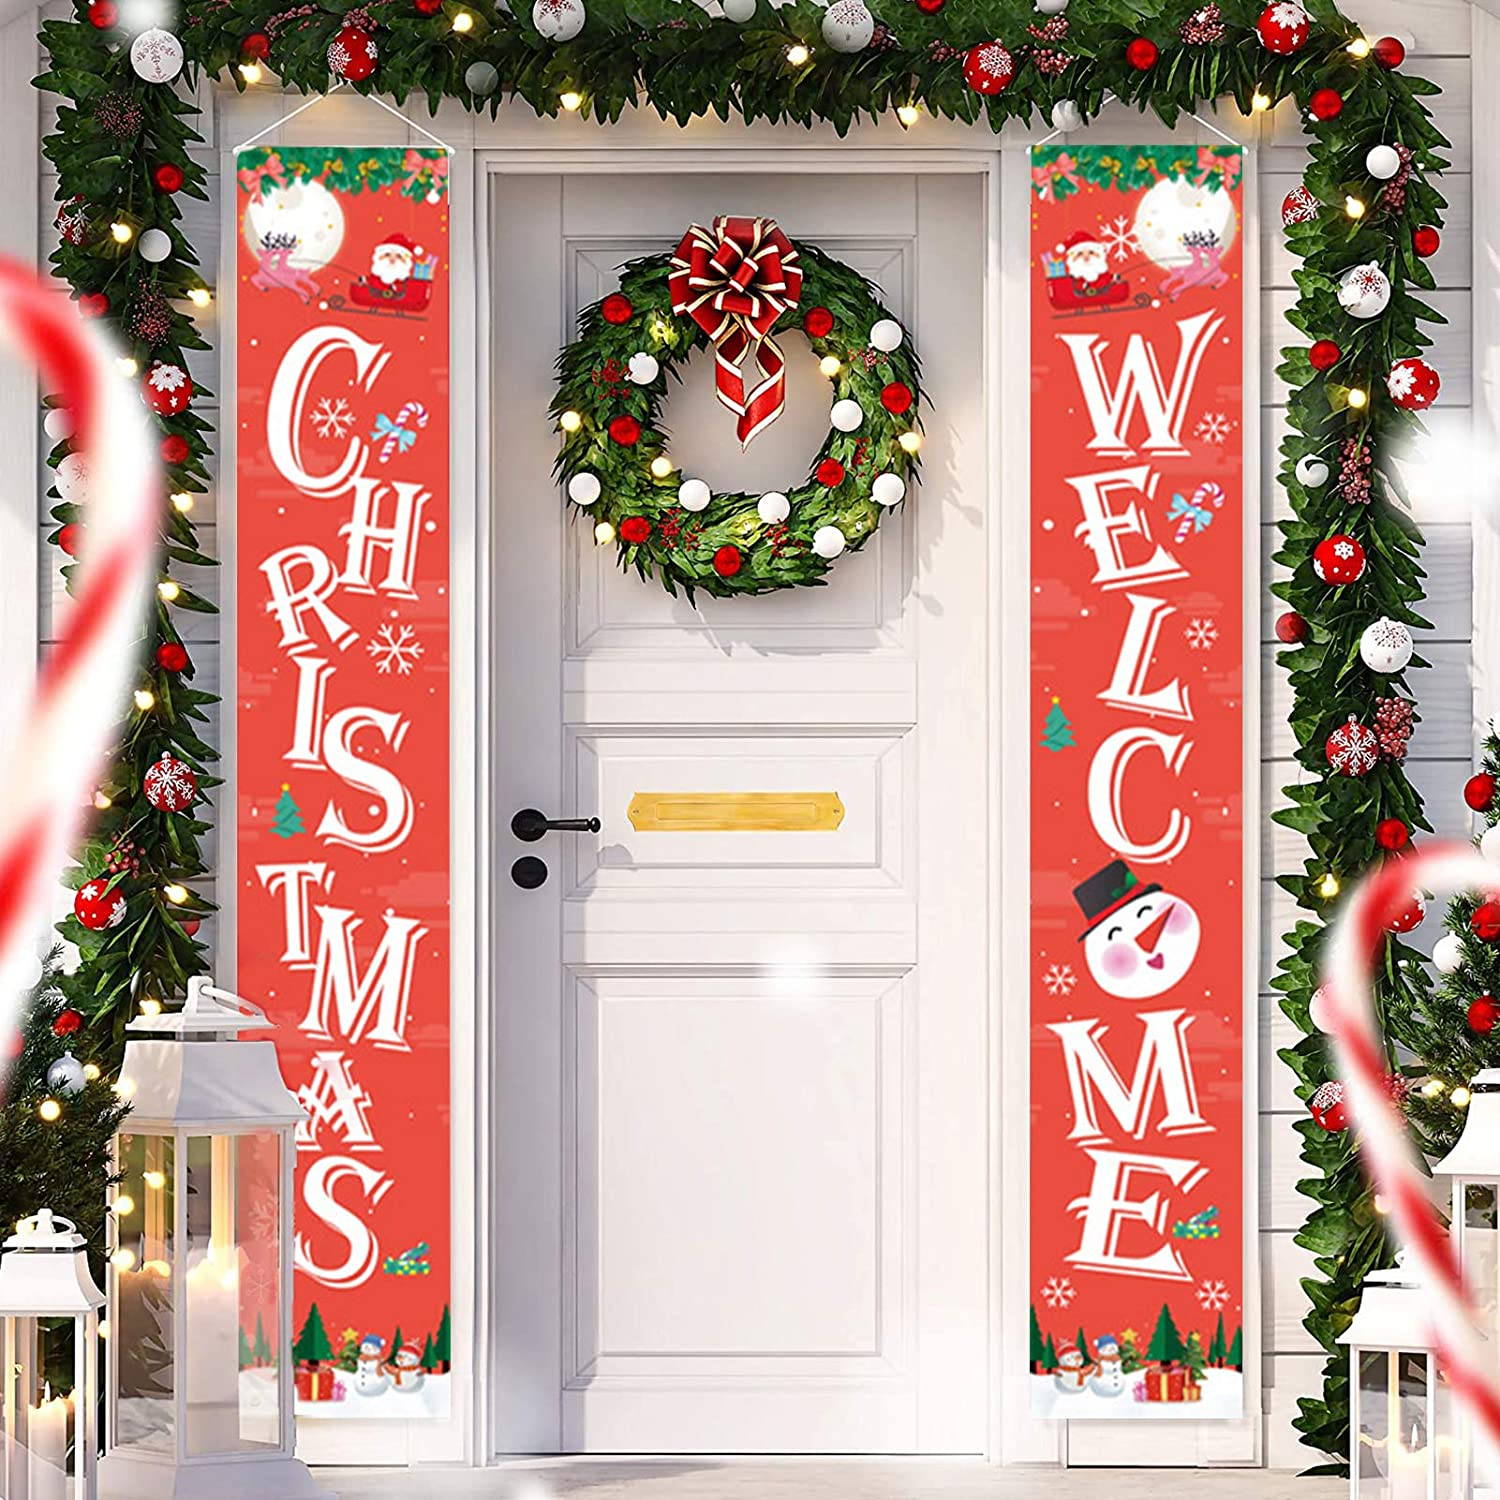 Directtyteam Christmas Porch Sign, Welcome and Christmas - Xmas Hanging Christmas Banners for Holiday Home Indoor Outdoor Porch Wall Door Curtain Decoration